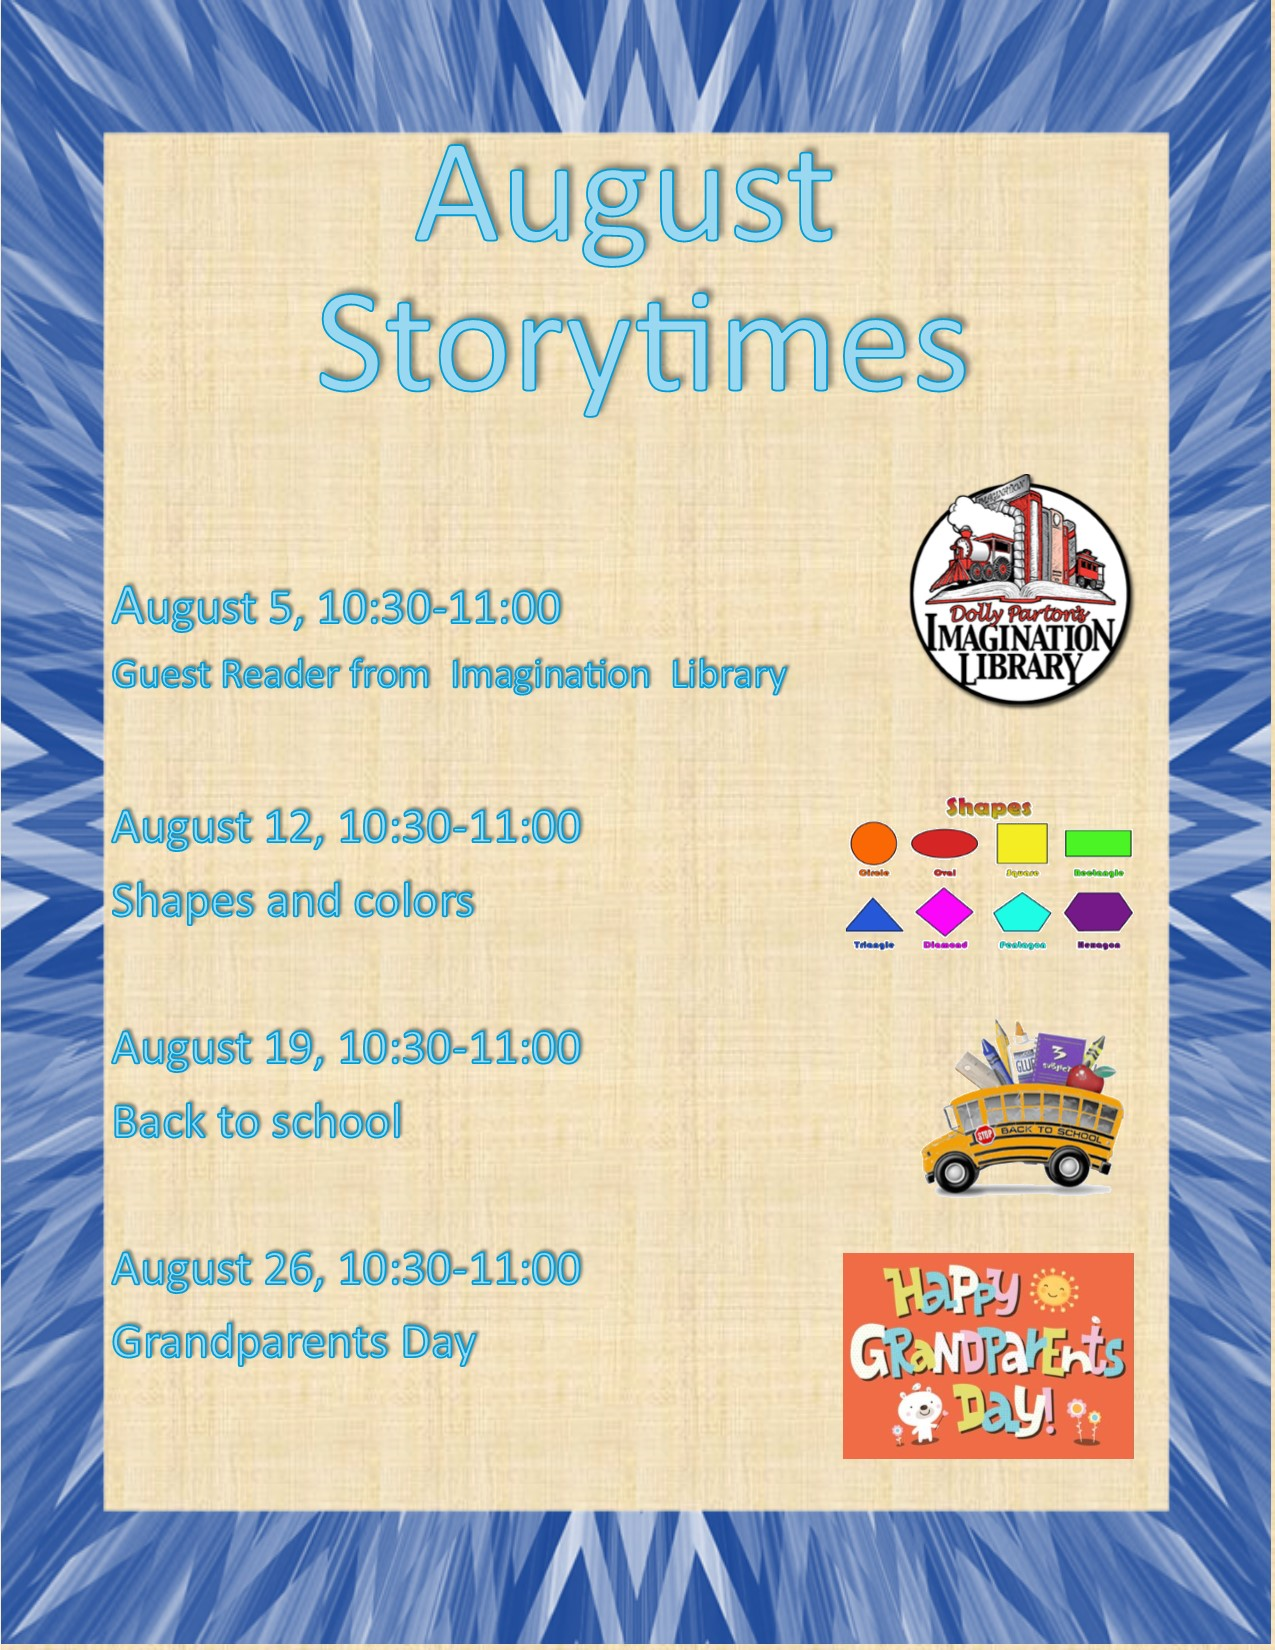 August Storytimes Dates and Times